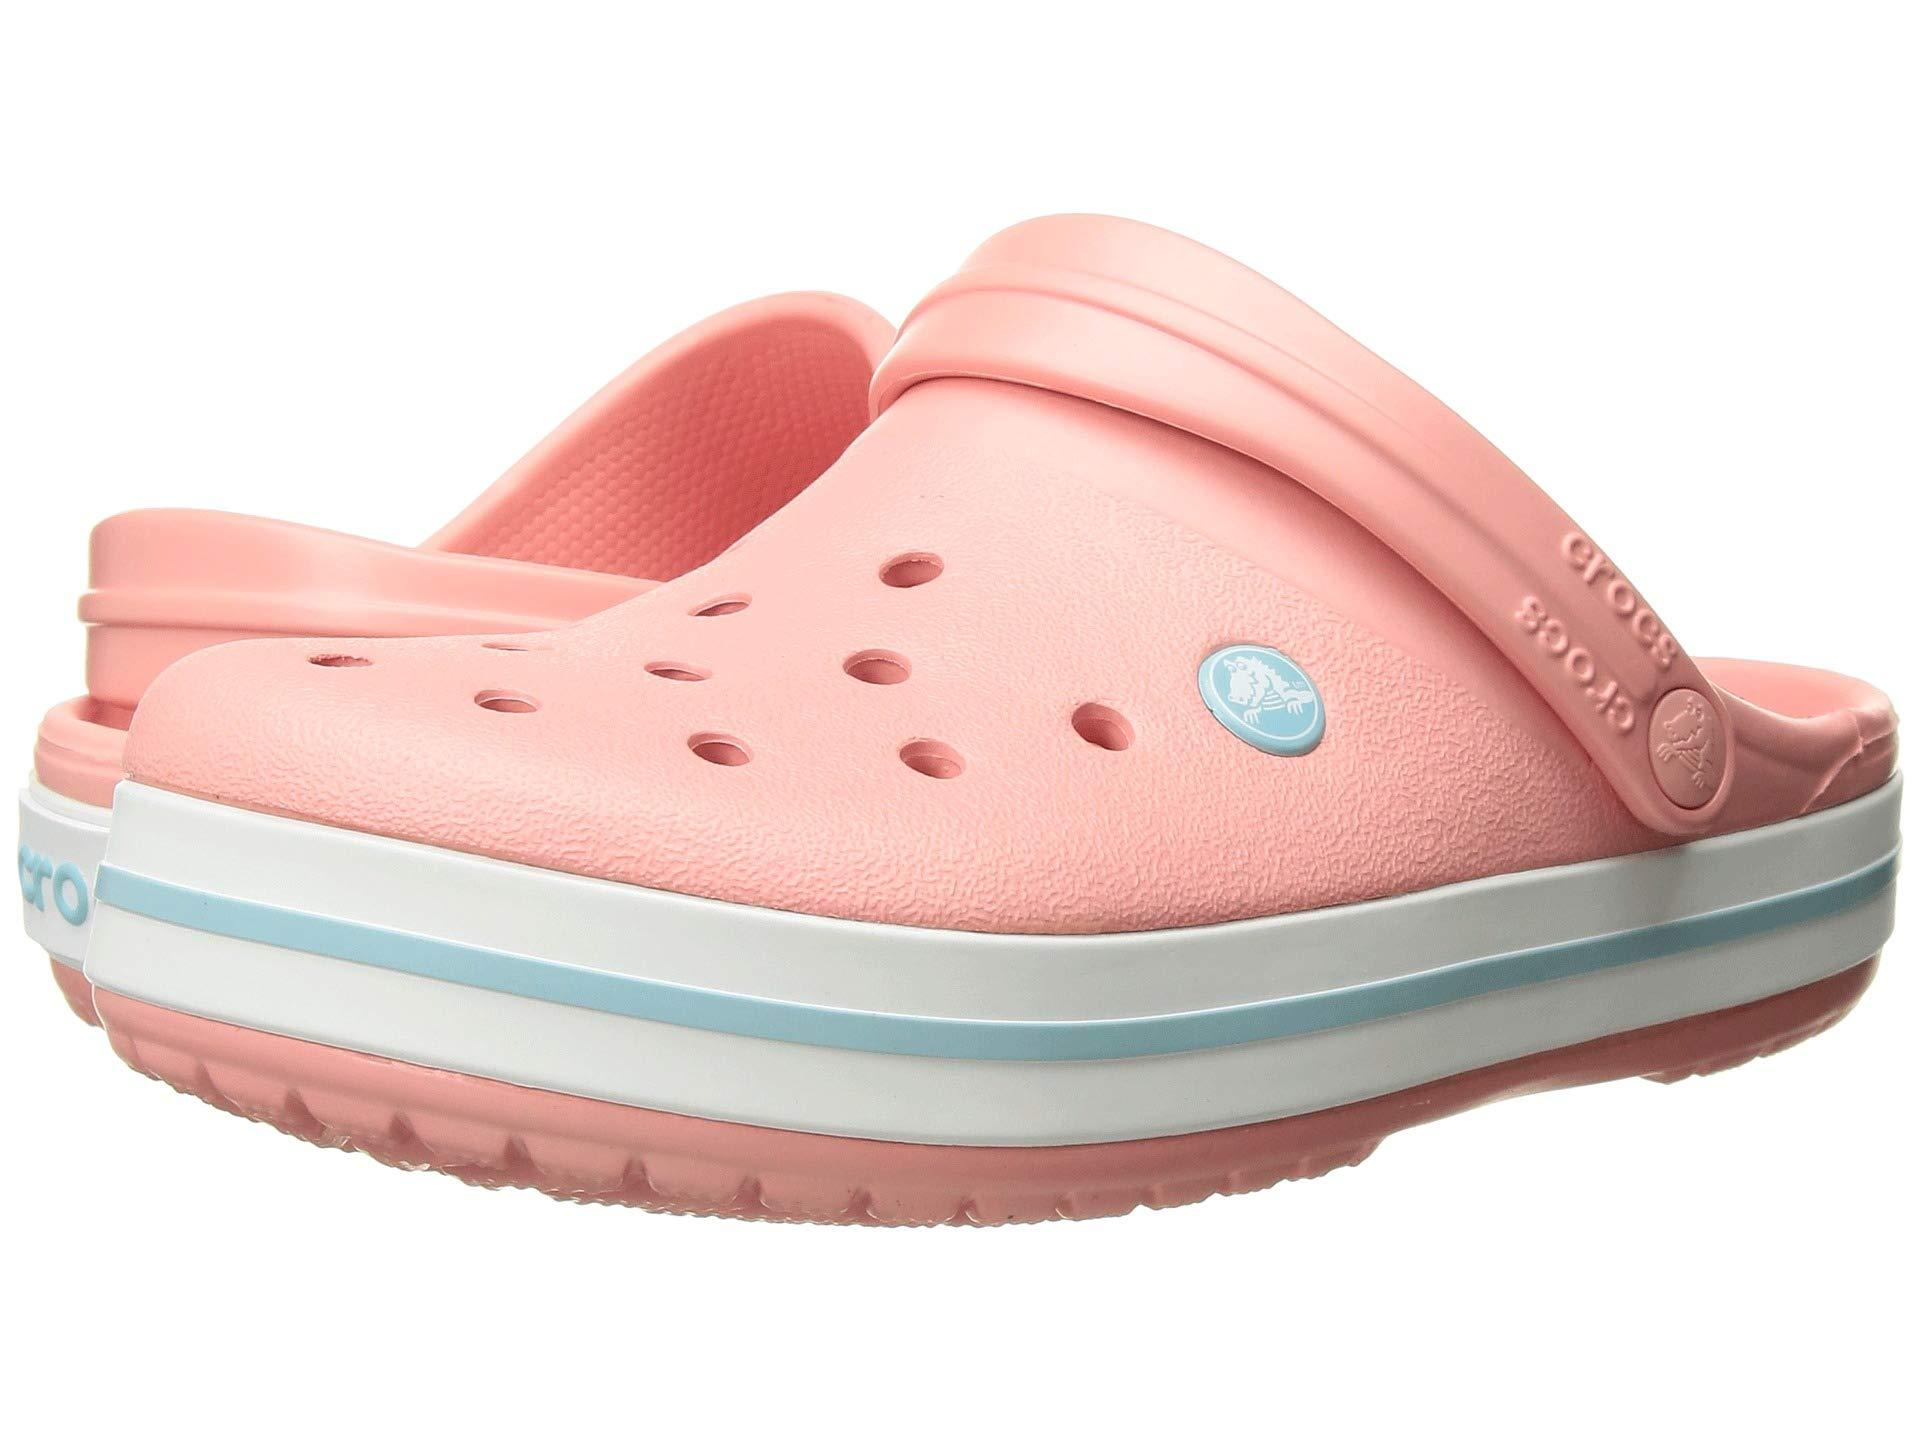 f07b0b0d0 Lyst - Crocs™ Crocband Clog (light Grey bright Coral) Clog Shoes in Pink